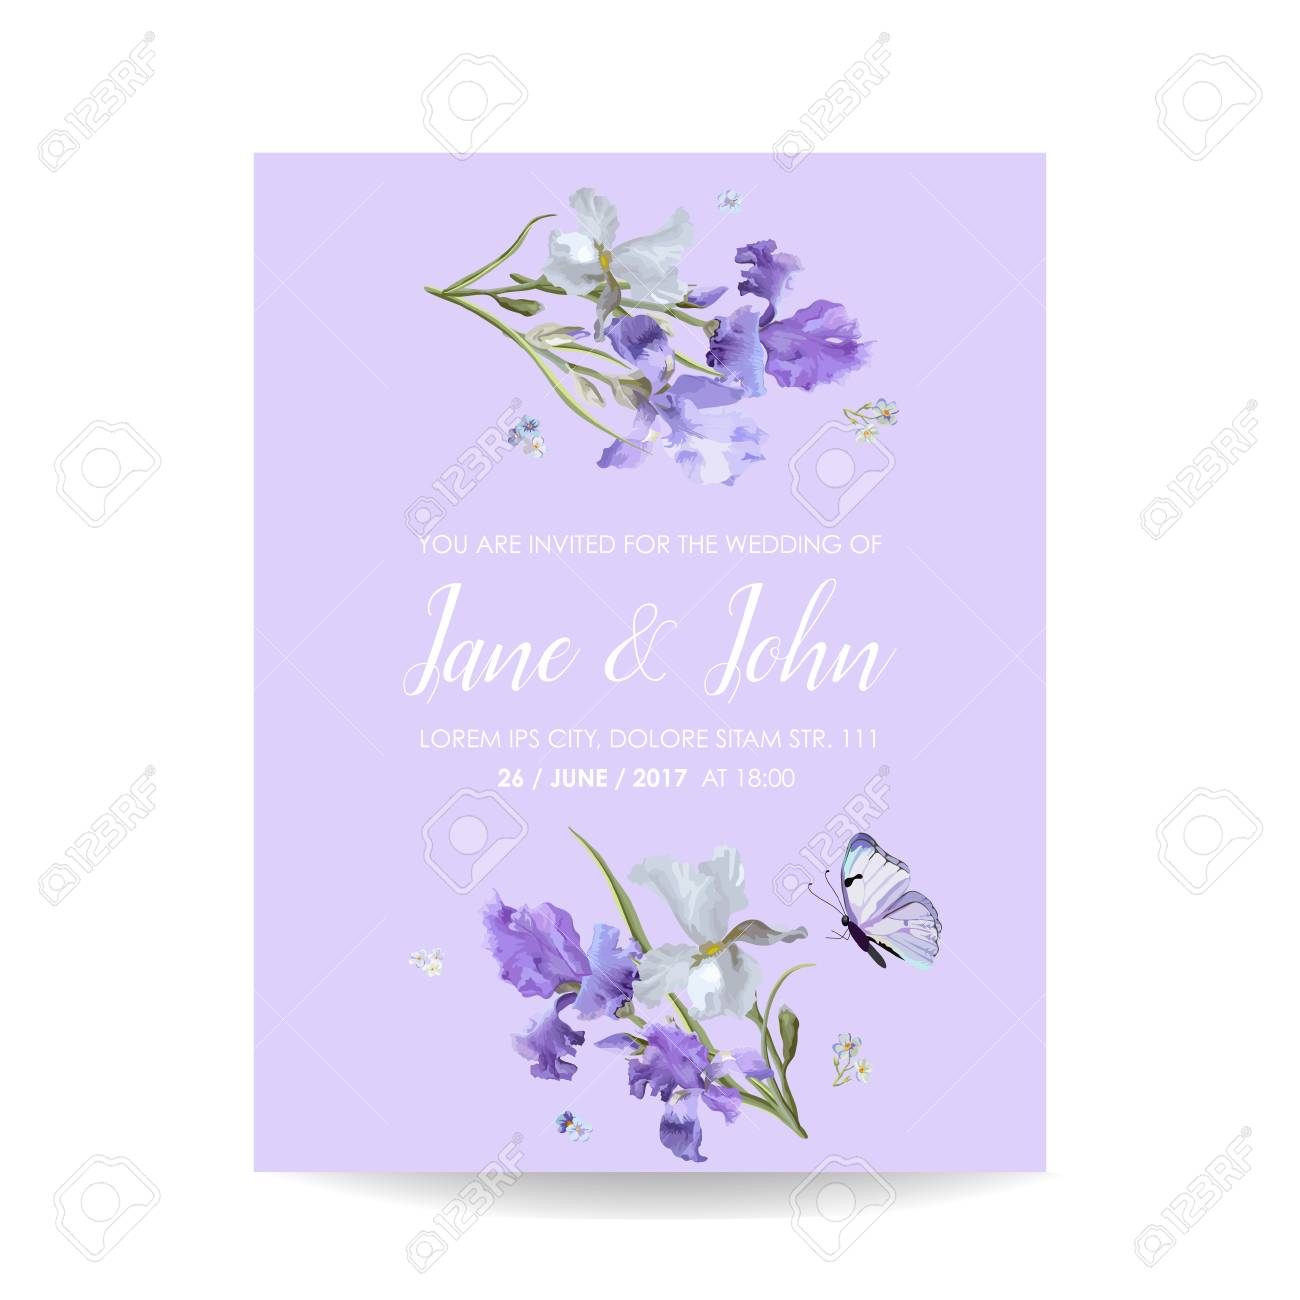 Save The Date Card With Iris Flowers And Butterflies Floral